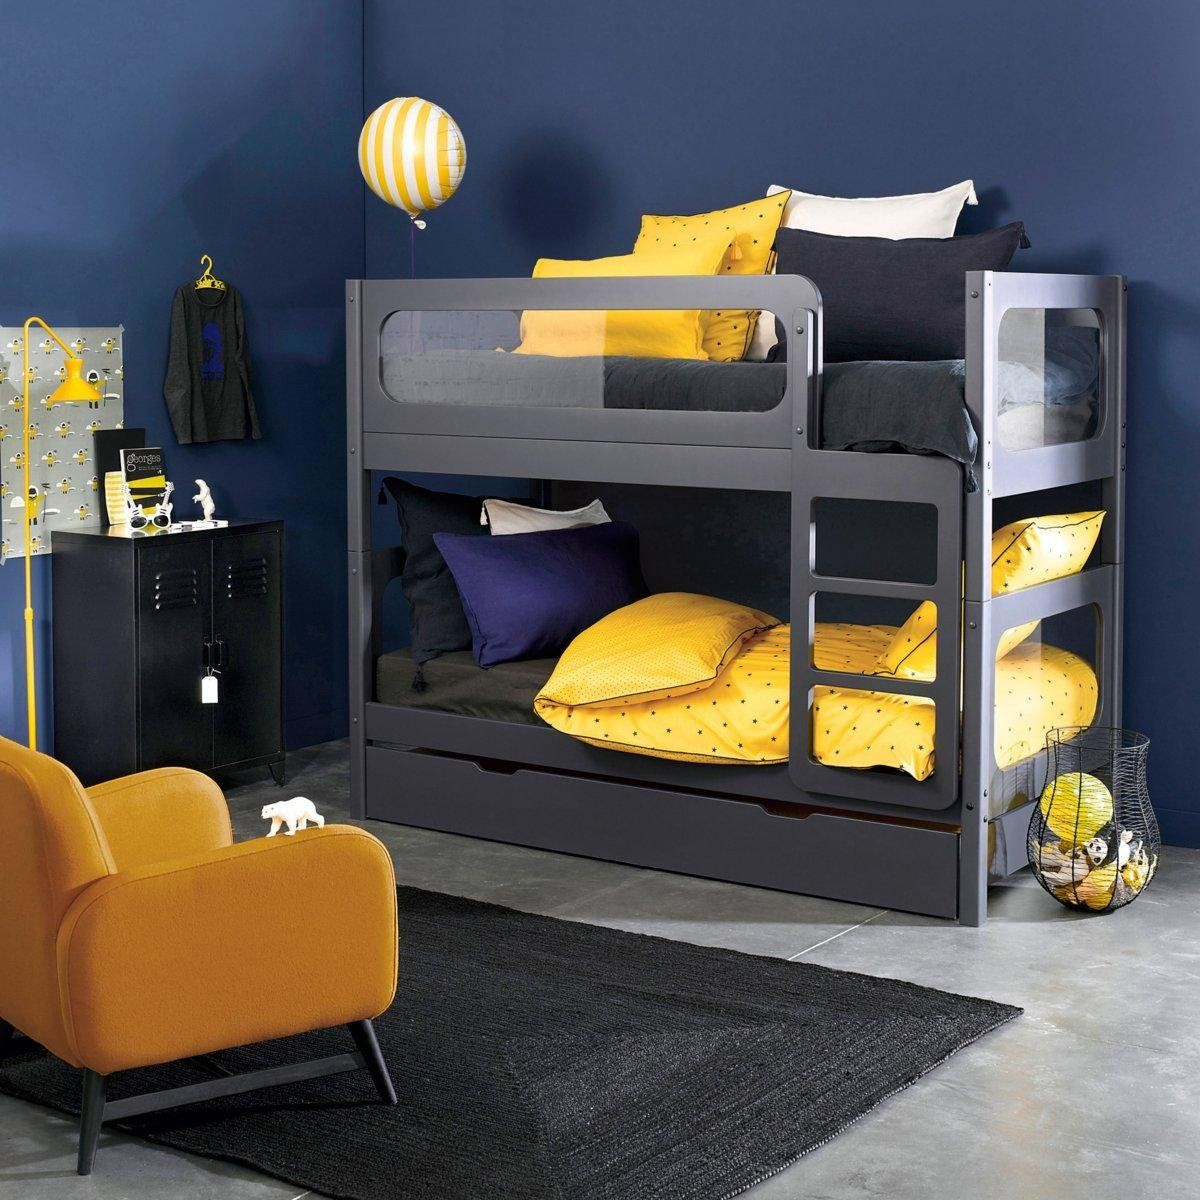 lits superposes originaux maison design. Black Bedroom Furniture Sets. Home Design Ideas